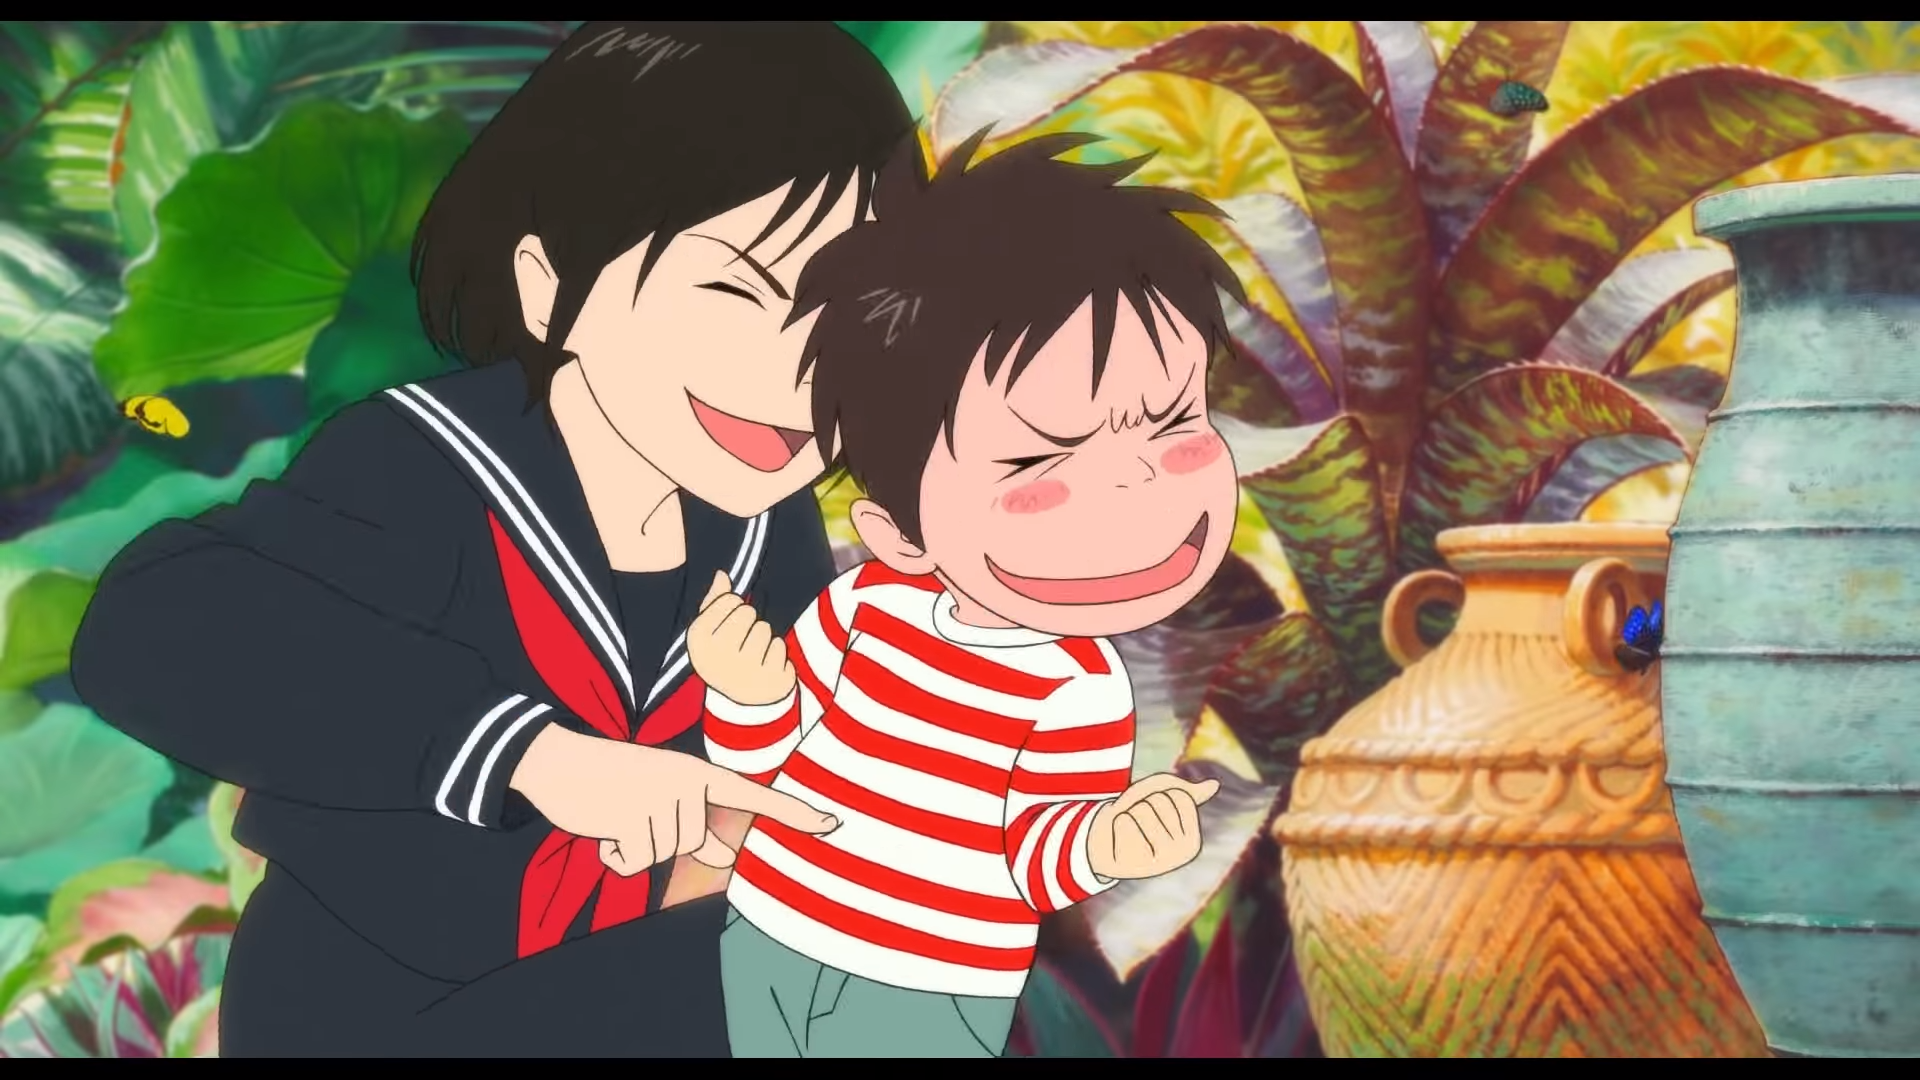 Kun and Mirai tickle each other in a playful scene from Mirai